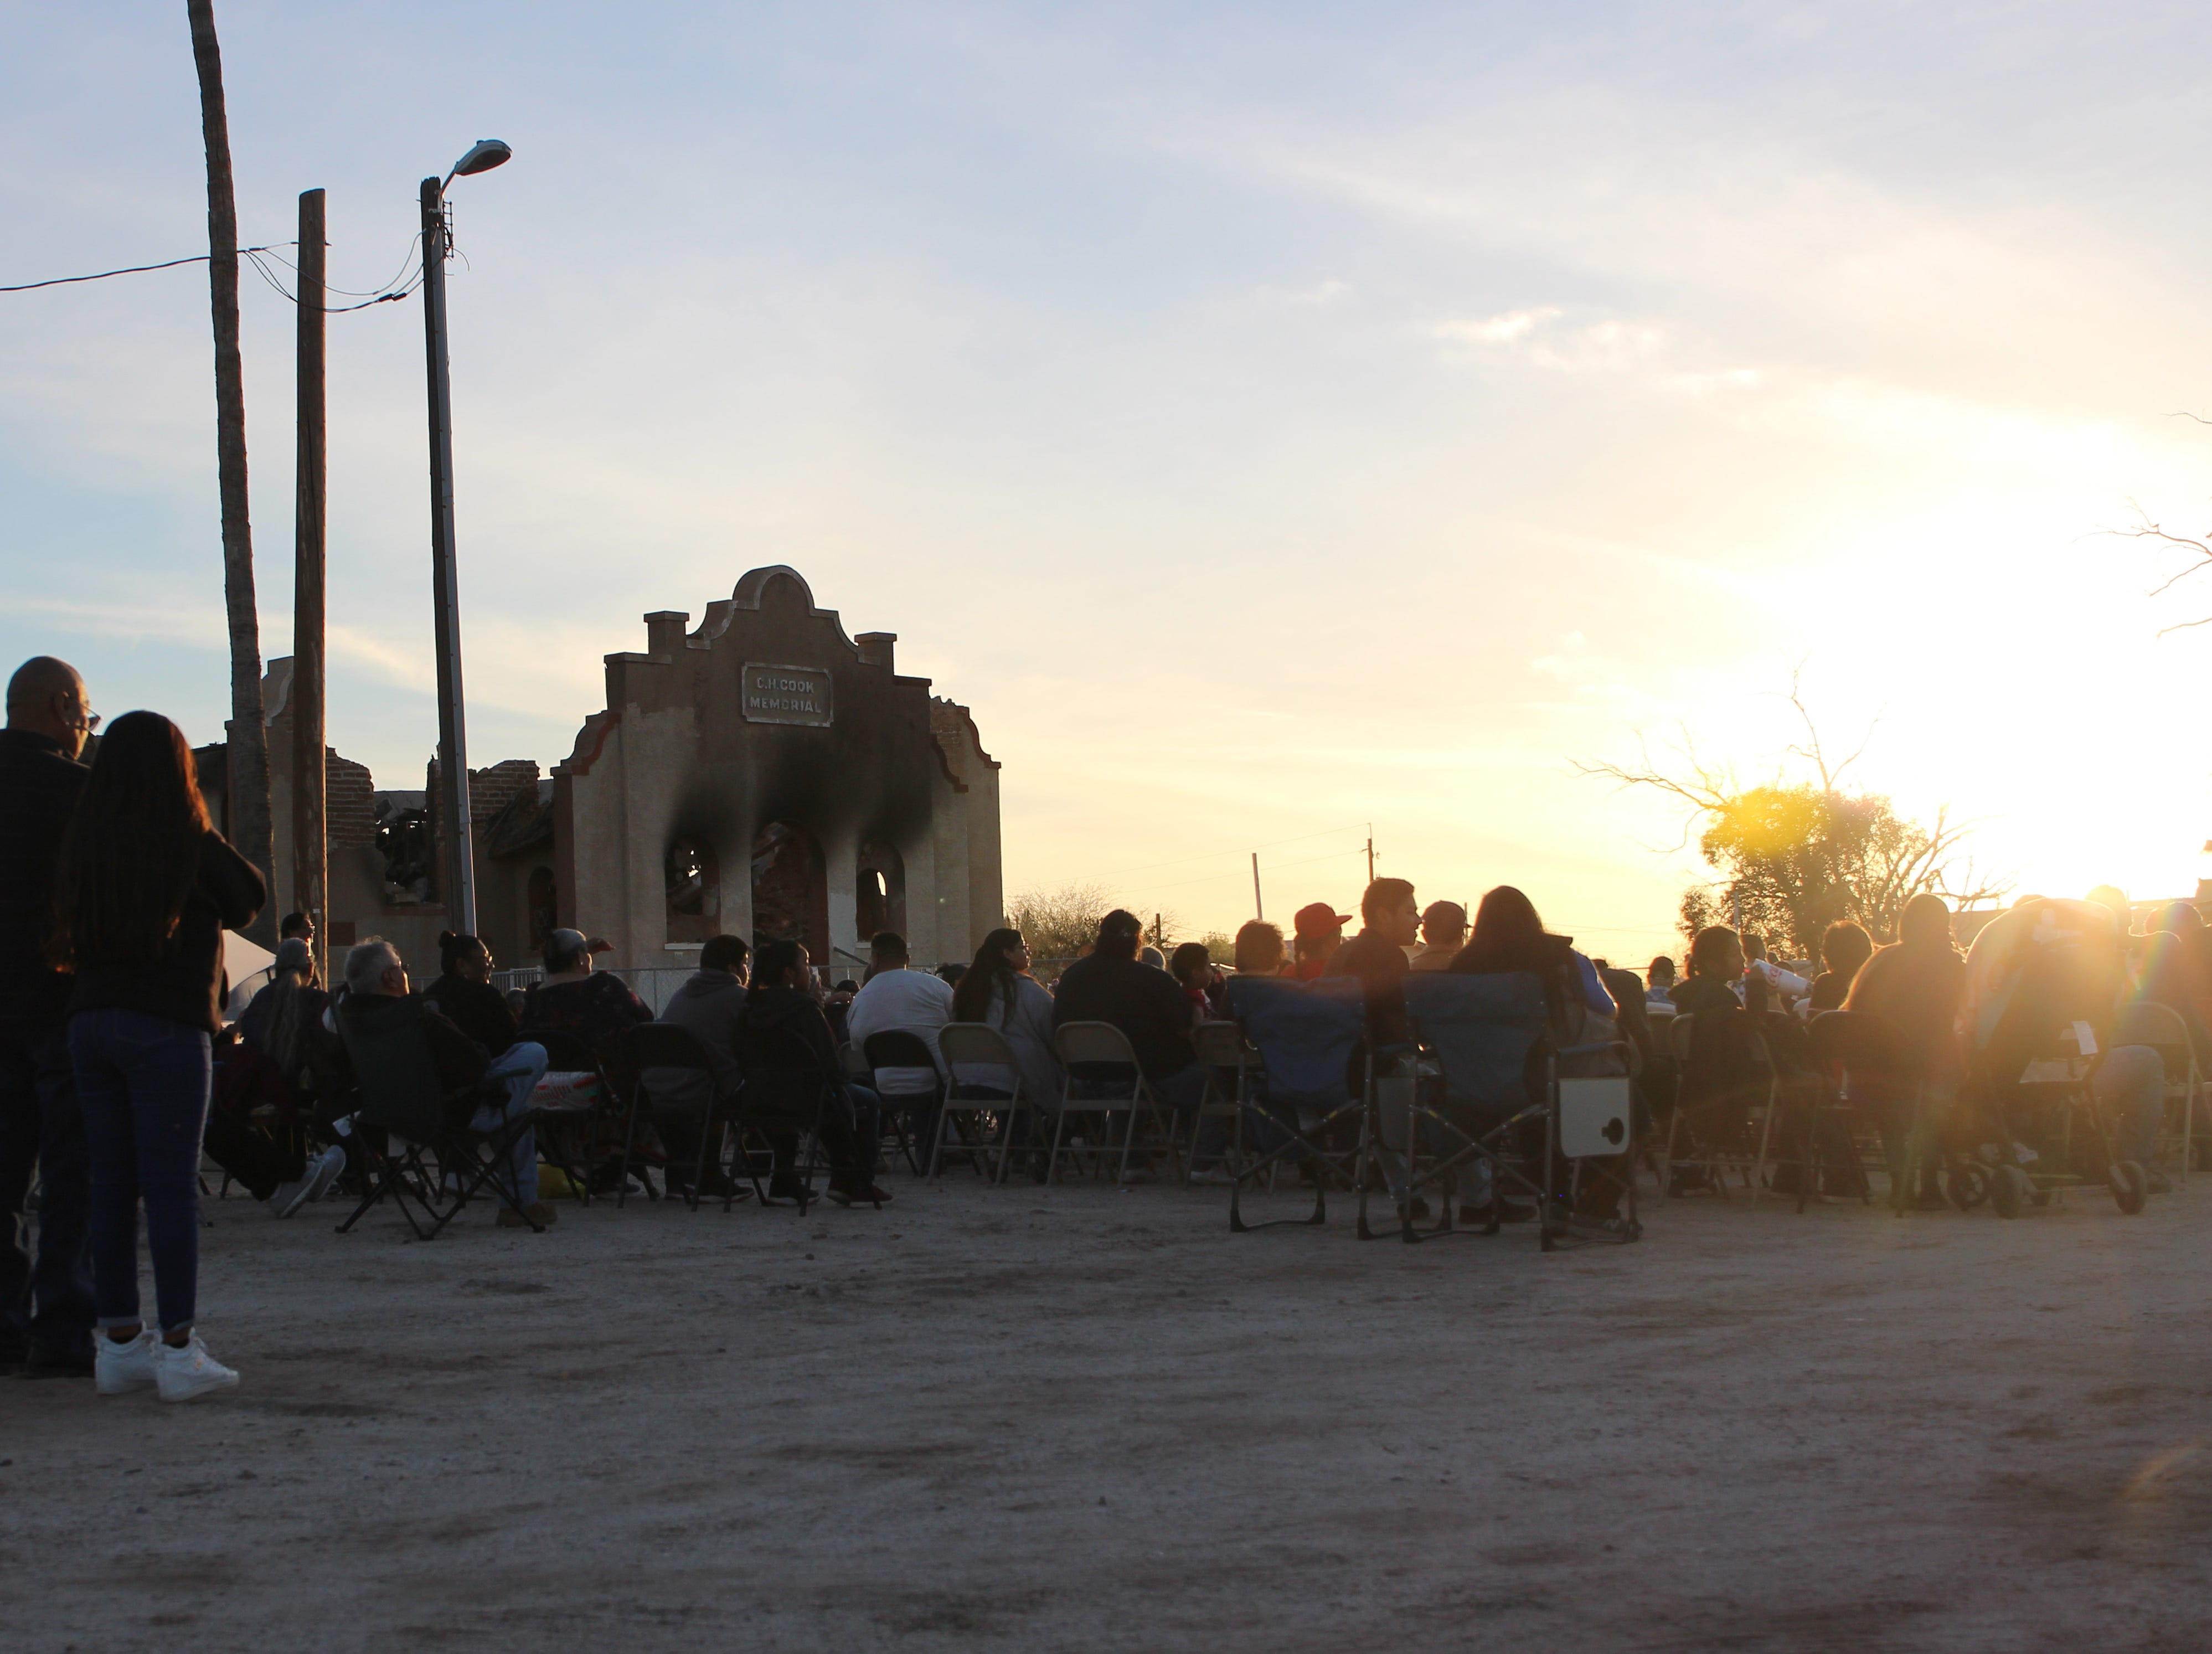 The sun sets over the crowd at the prayer vigil Friday evening.